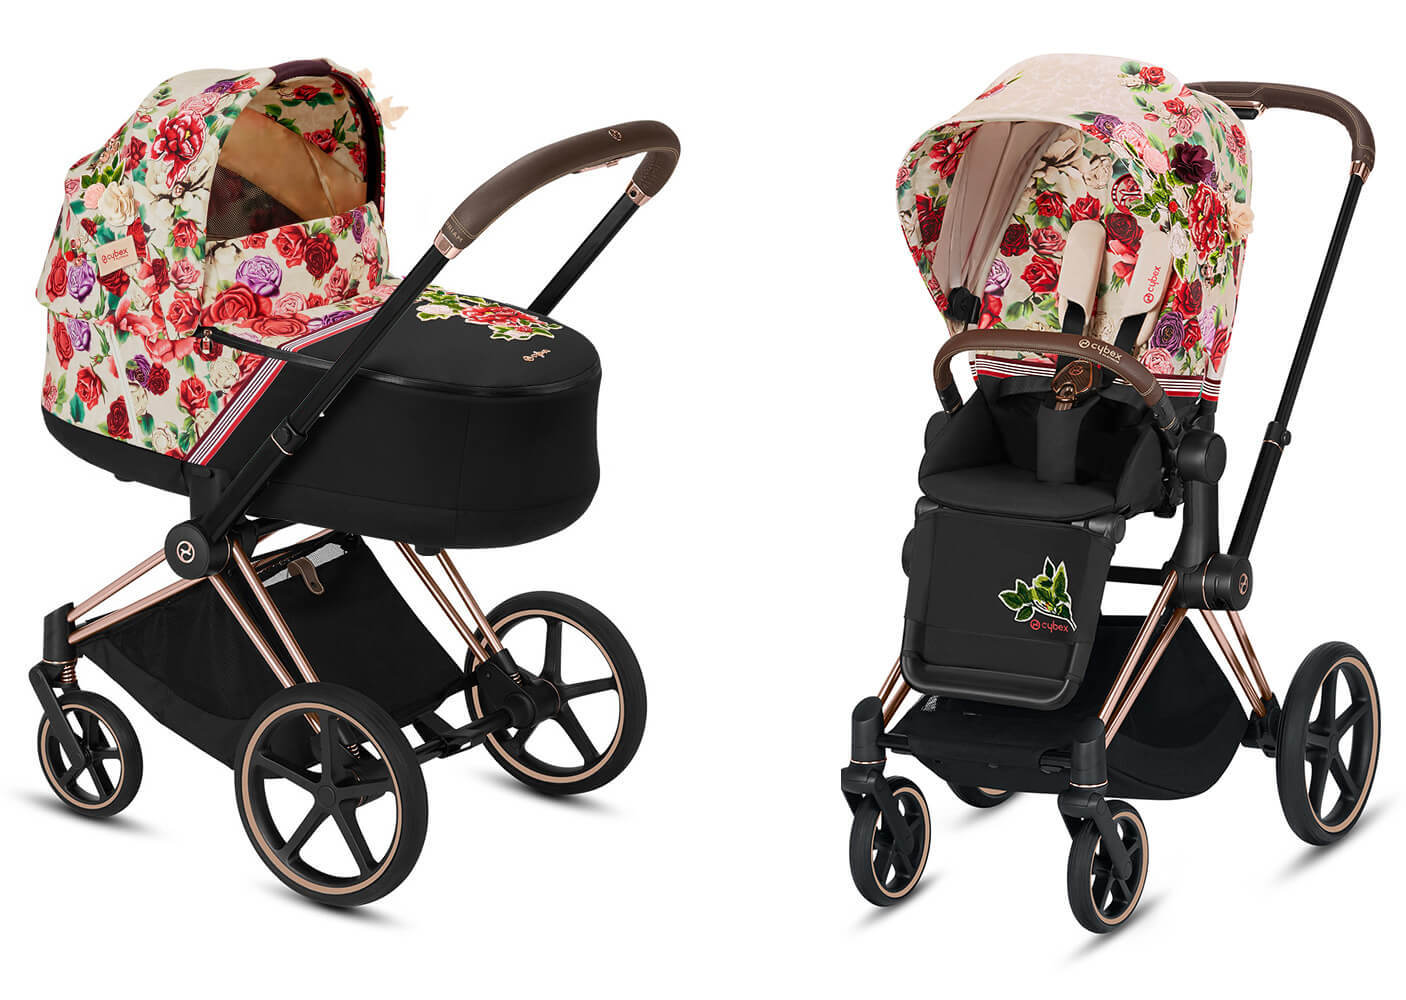 Цвета Cybex Priam 2 в 1 Детская коляска Cybex Priam III 2 в 1 FE Spring Blossom light шасси Rosegold cybex-priam-iii-2-in-1-spring-blossom-light.jpg